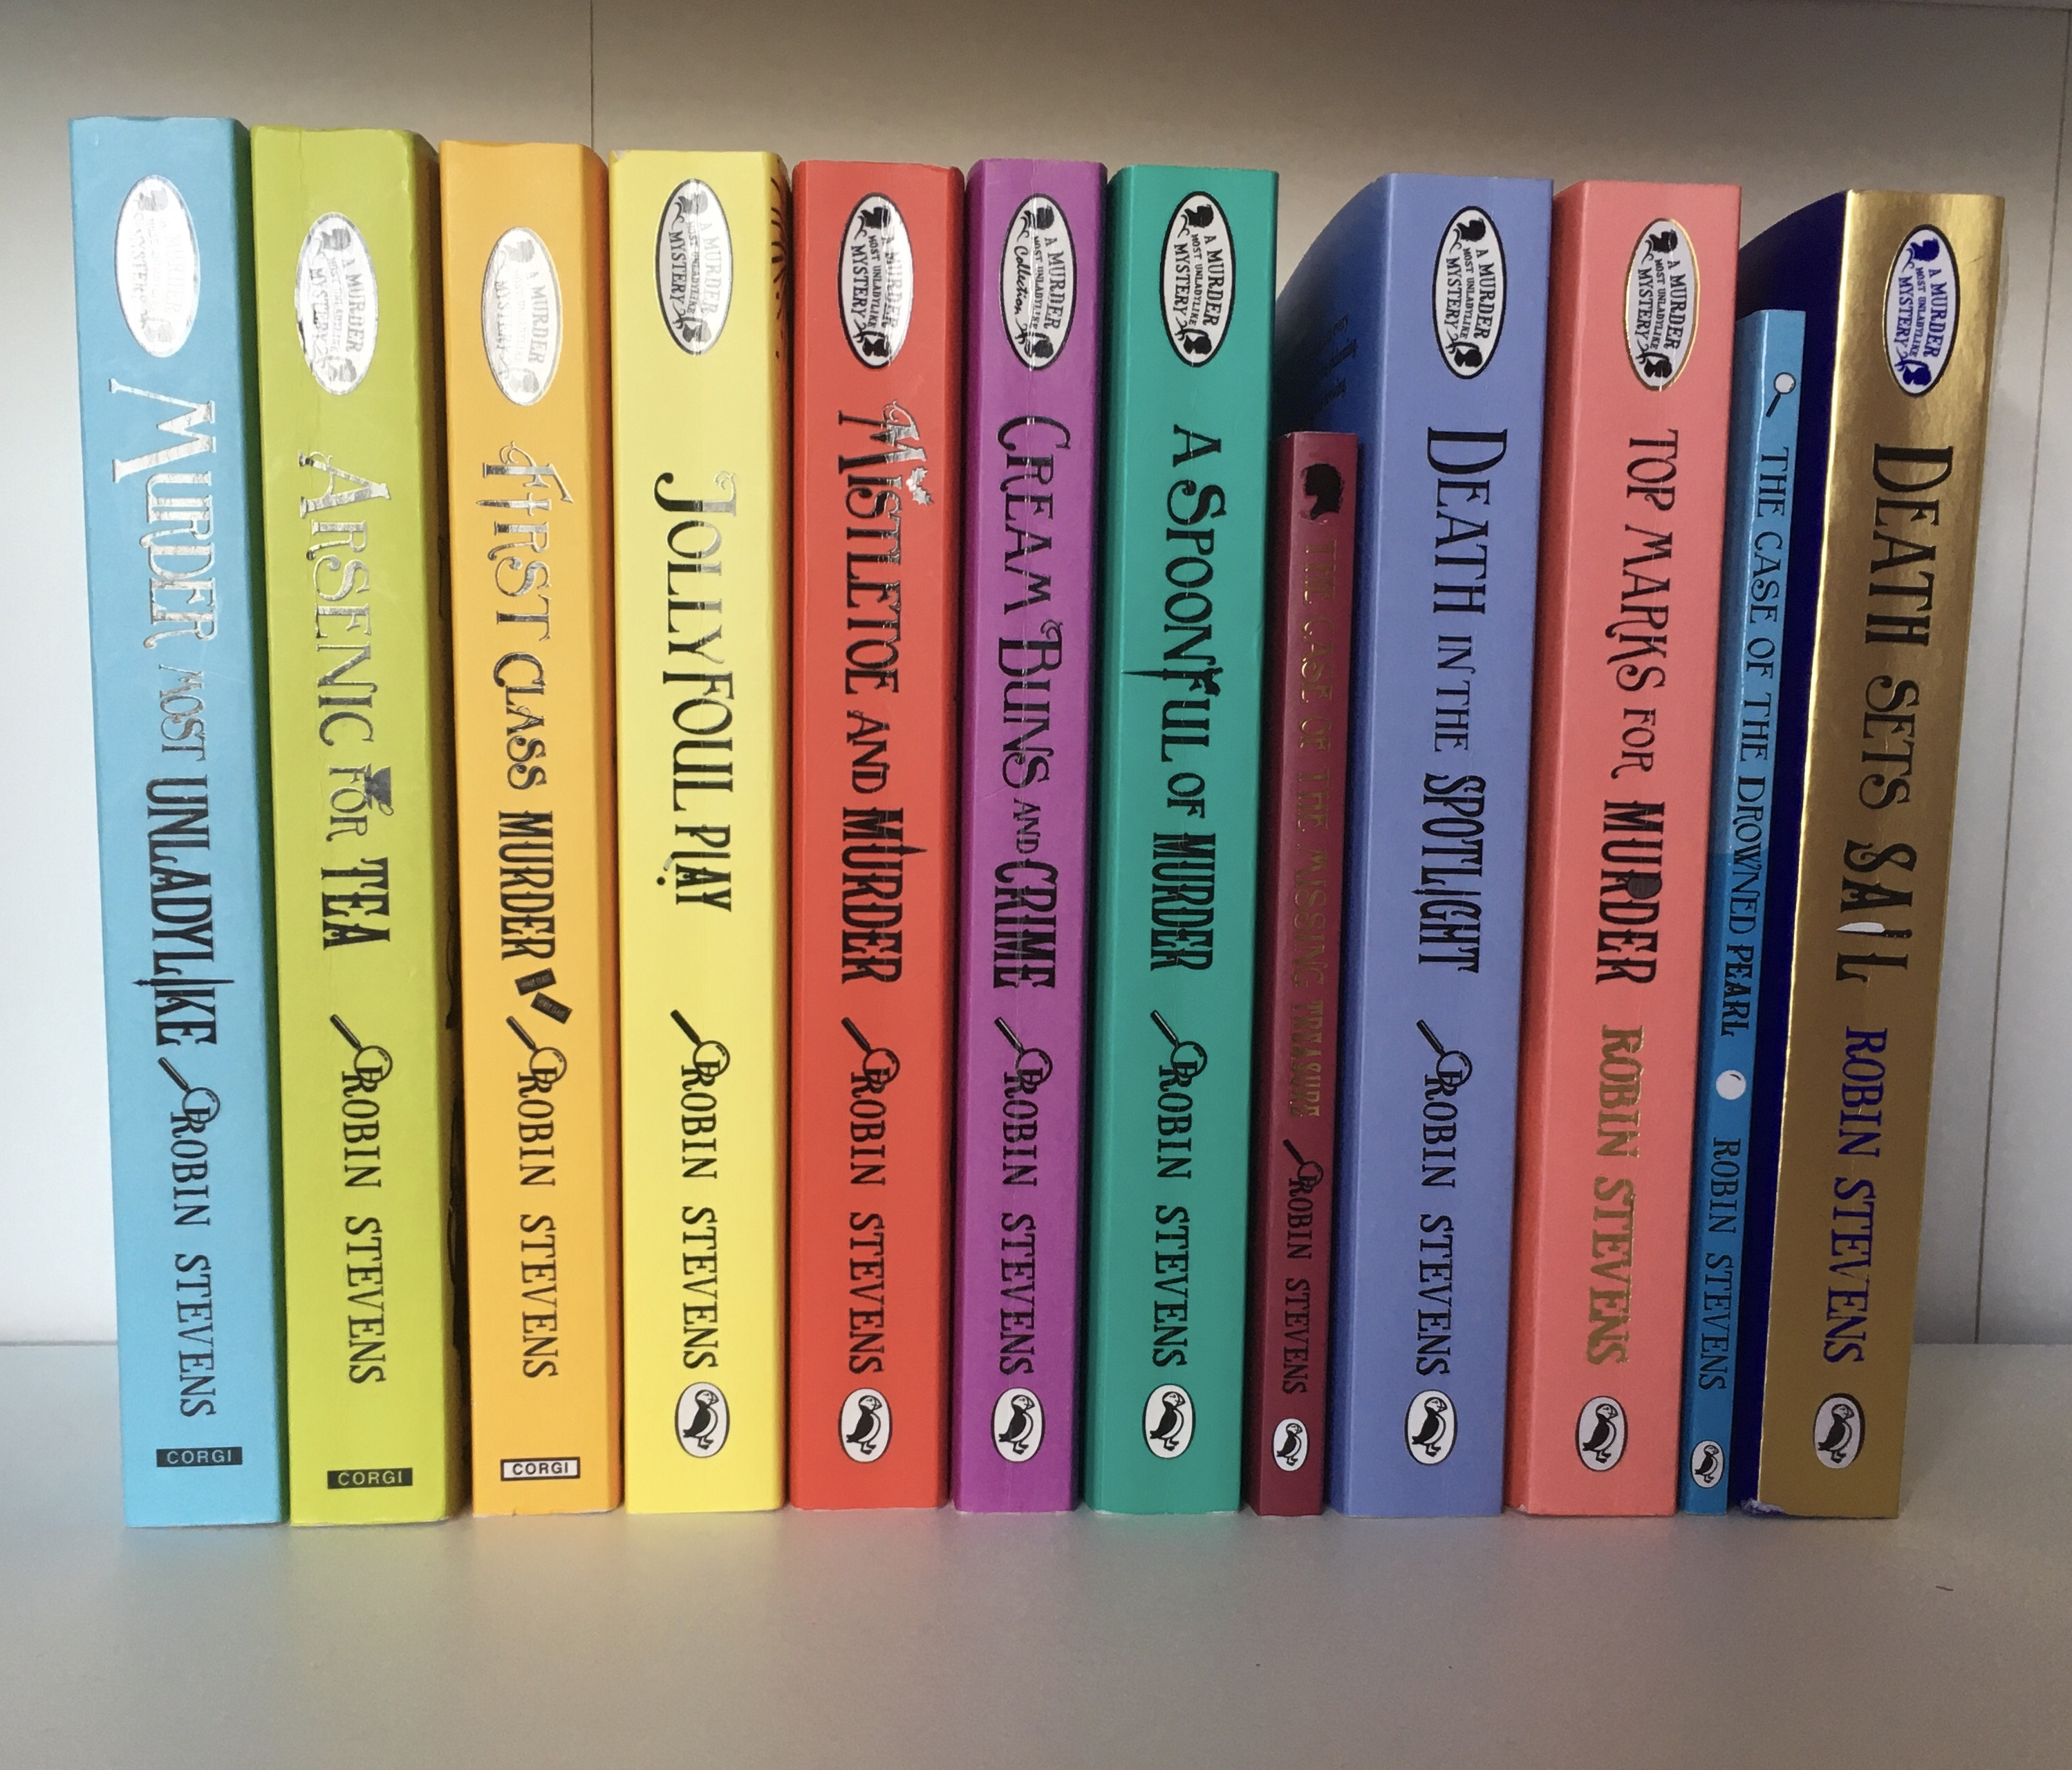 The spines of the Murder Most Unladylike series by Robin Stevens